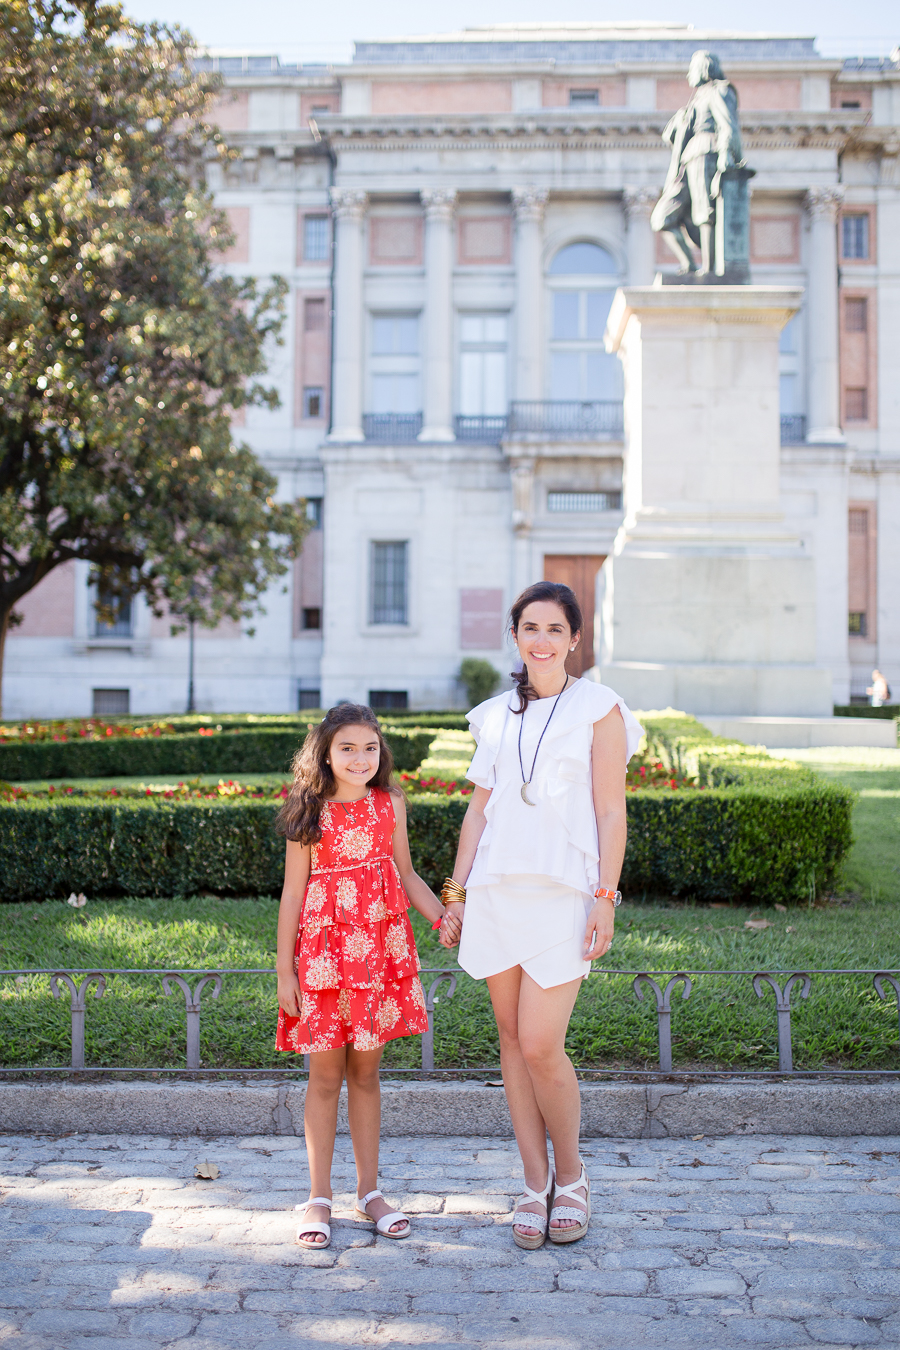 el-prado-madrid-mother-daughter-photo-session_004.jpg